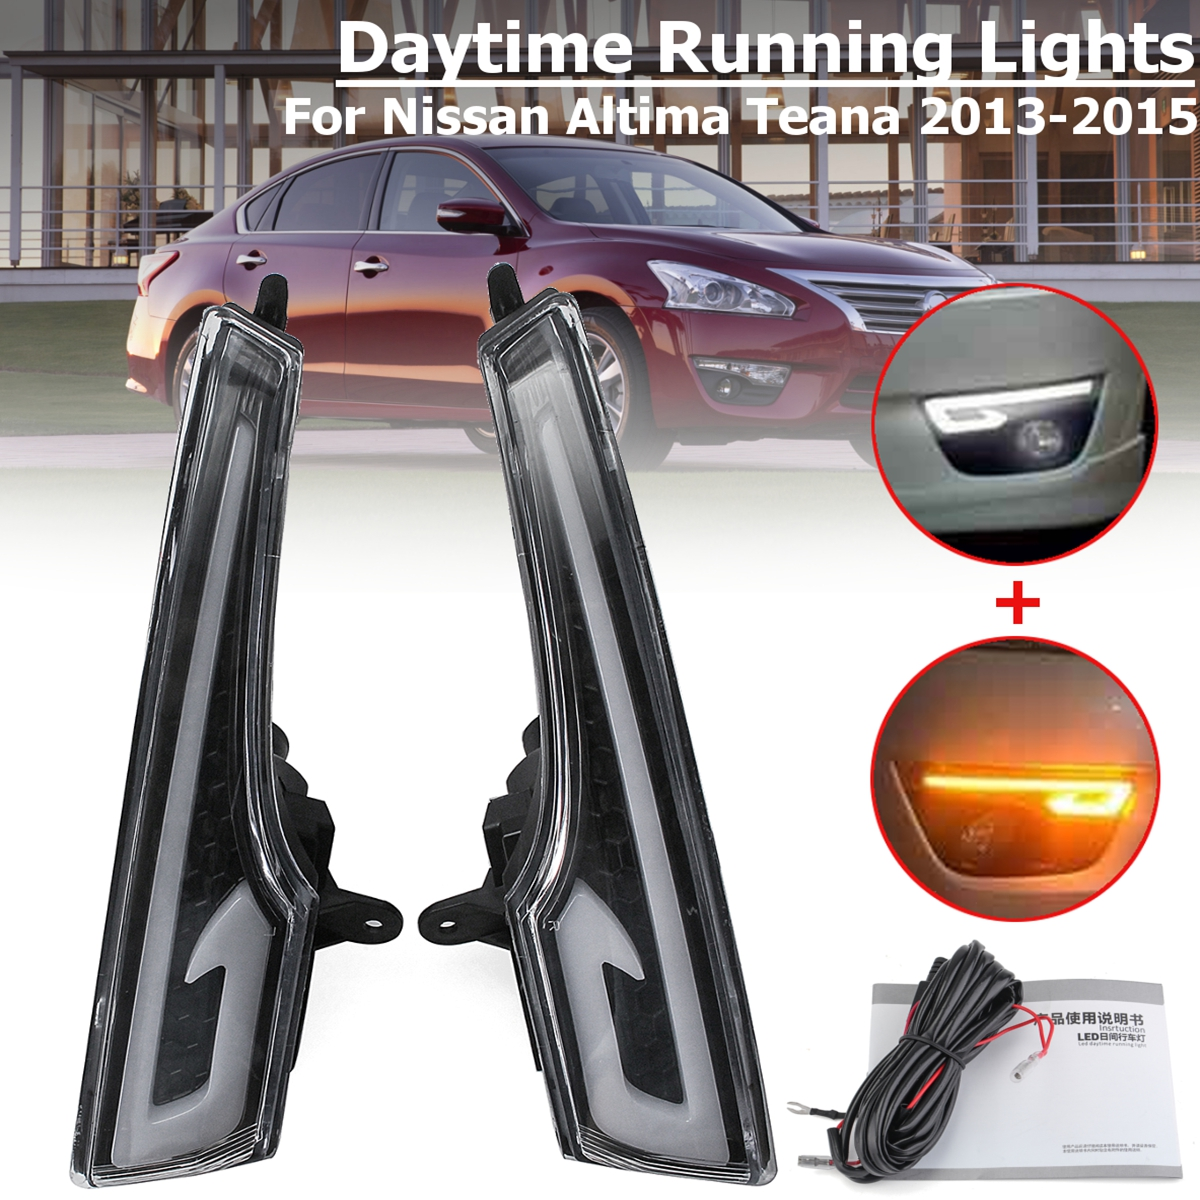 1Pair LED DRL Daytime Running Lights Lamp Fog light cover for Nissan Altima Teana 2013 2014 2015